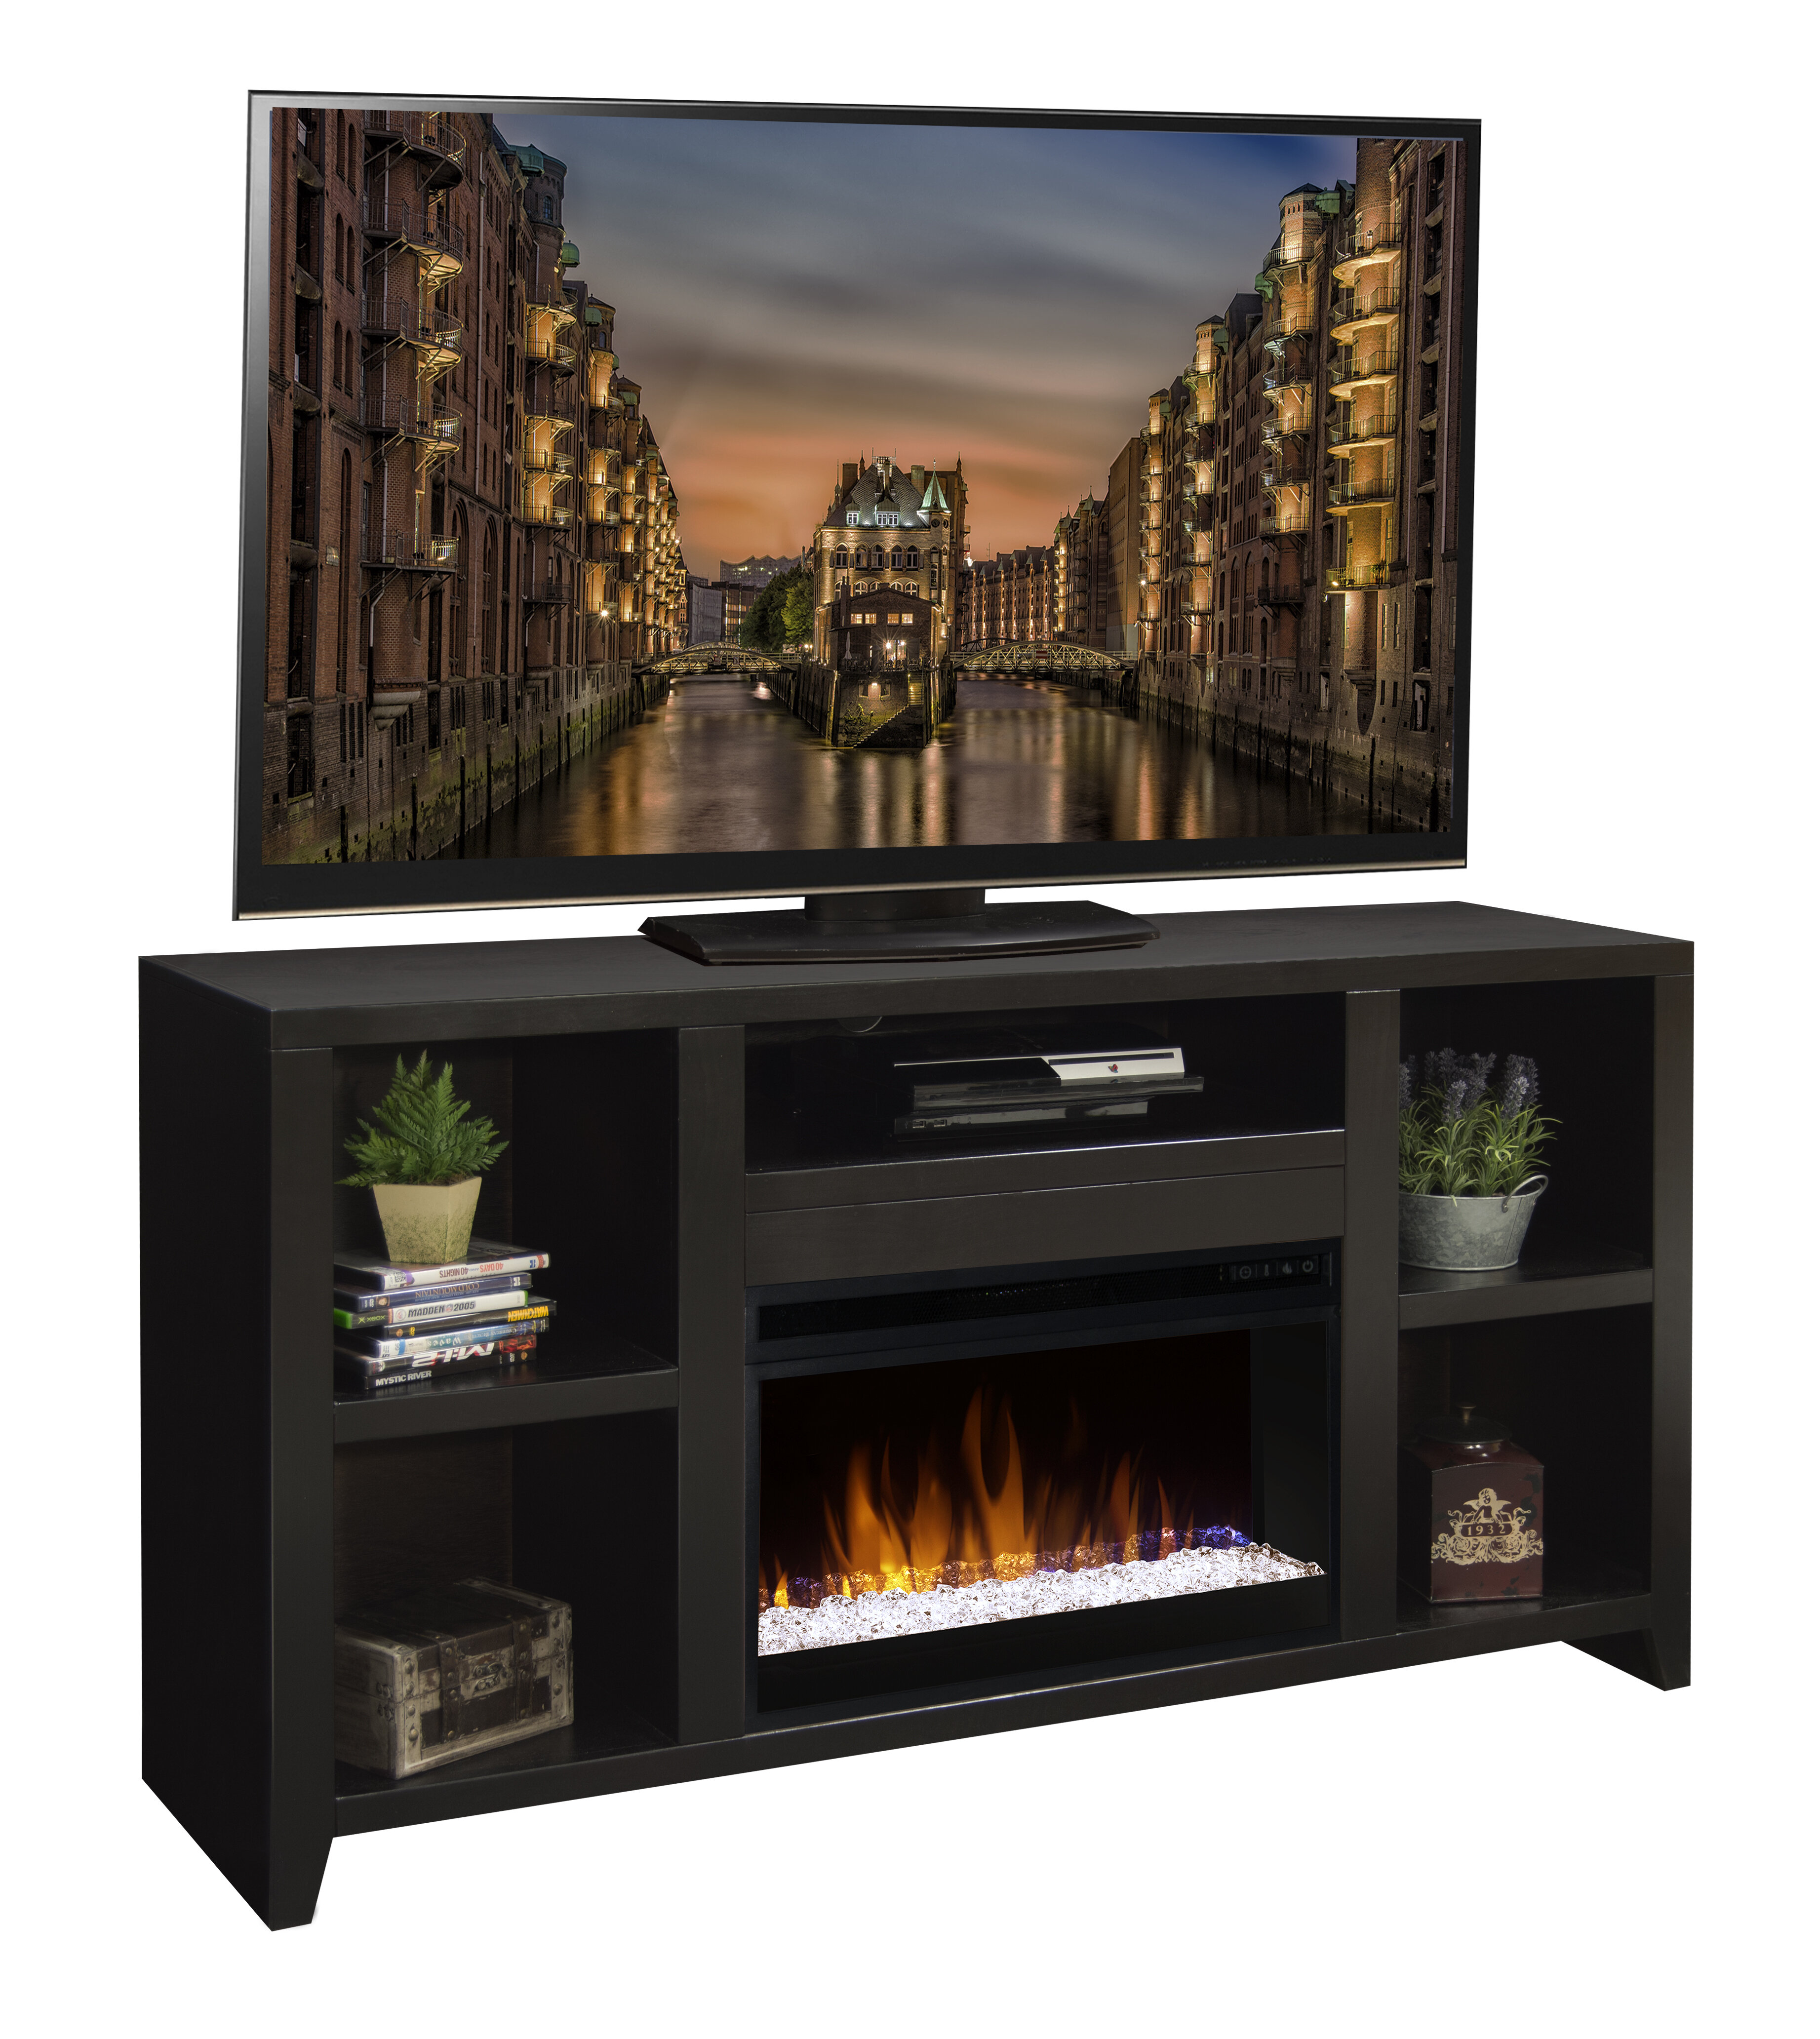 """60 Inch Corner Tv Stand with Fireplace Unique Garretson Tv Stand for Tvs Up to 65"""" with Fireplace"""